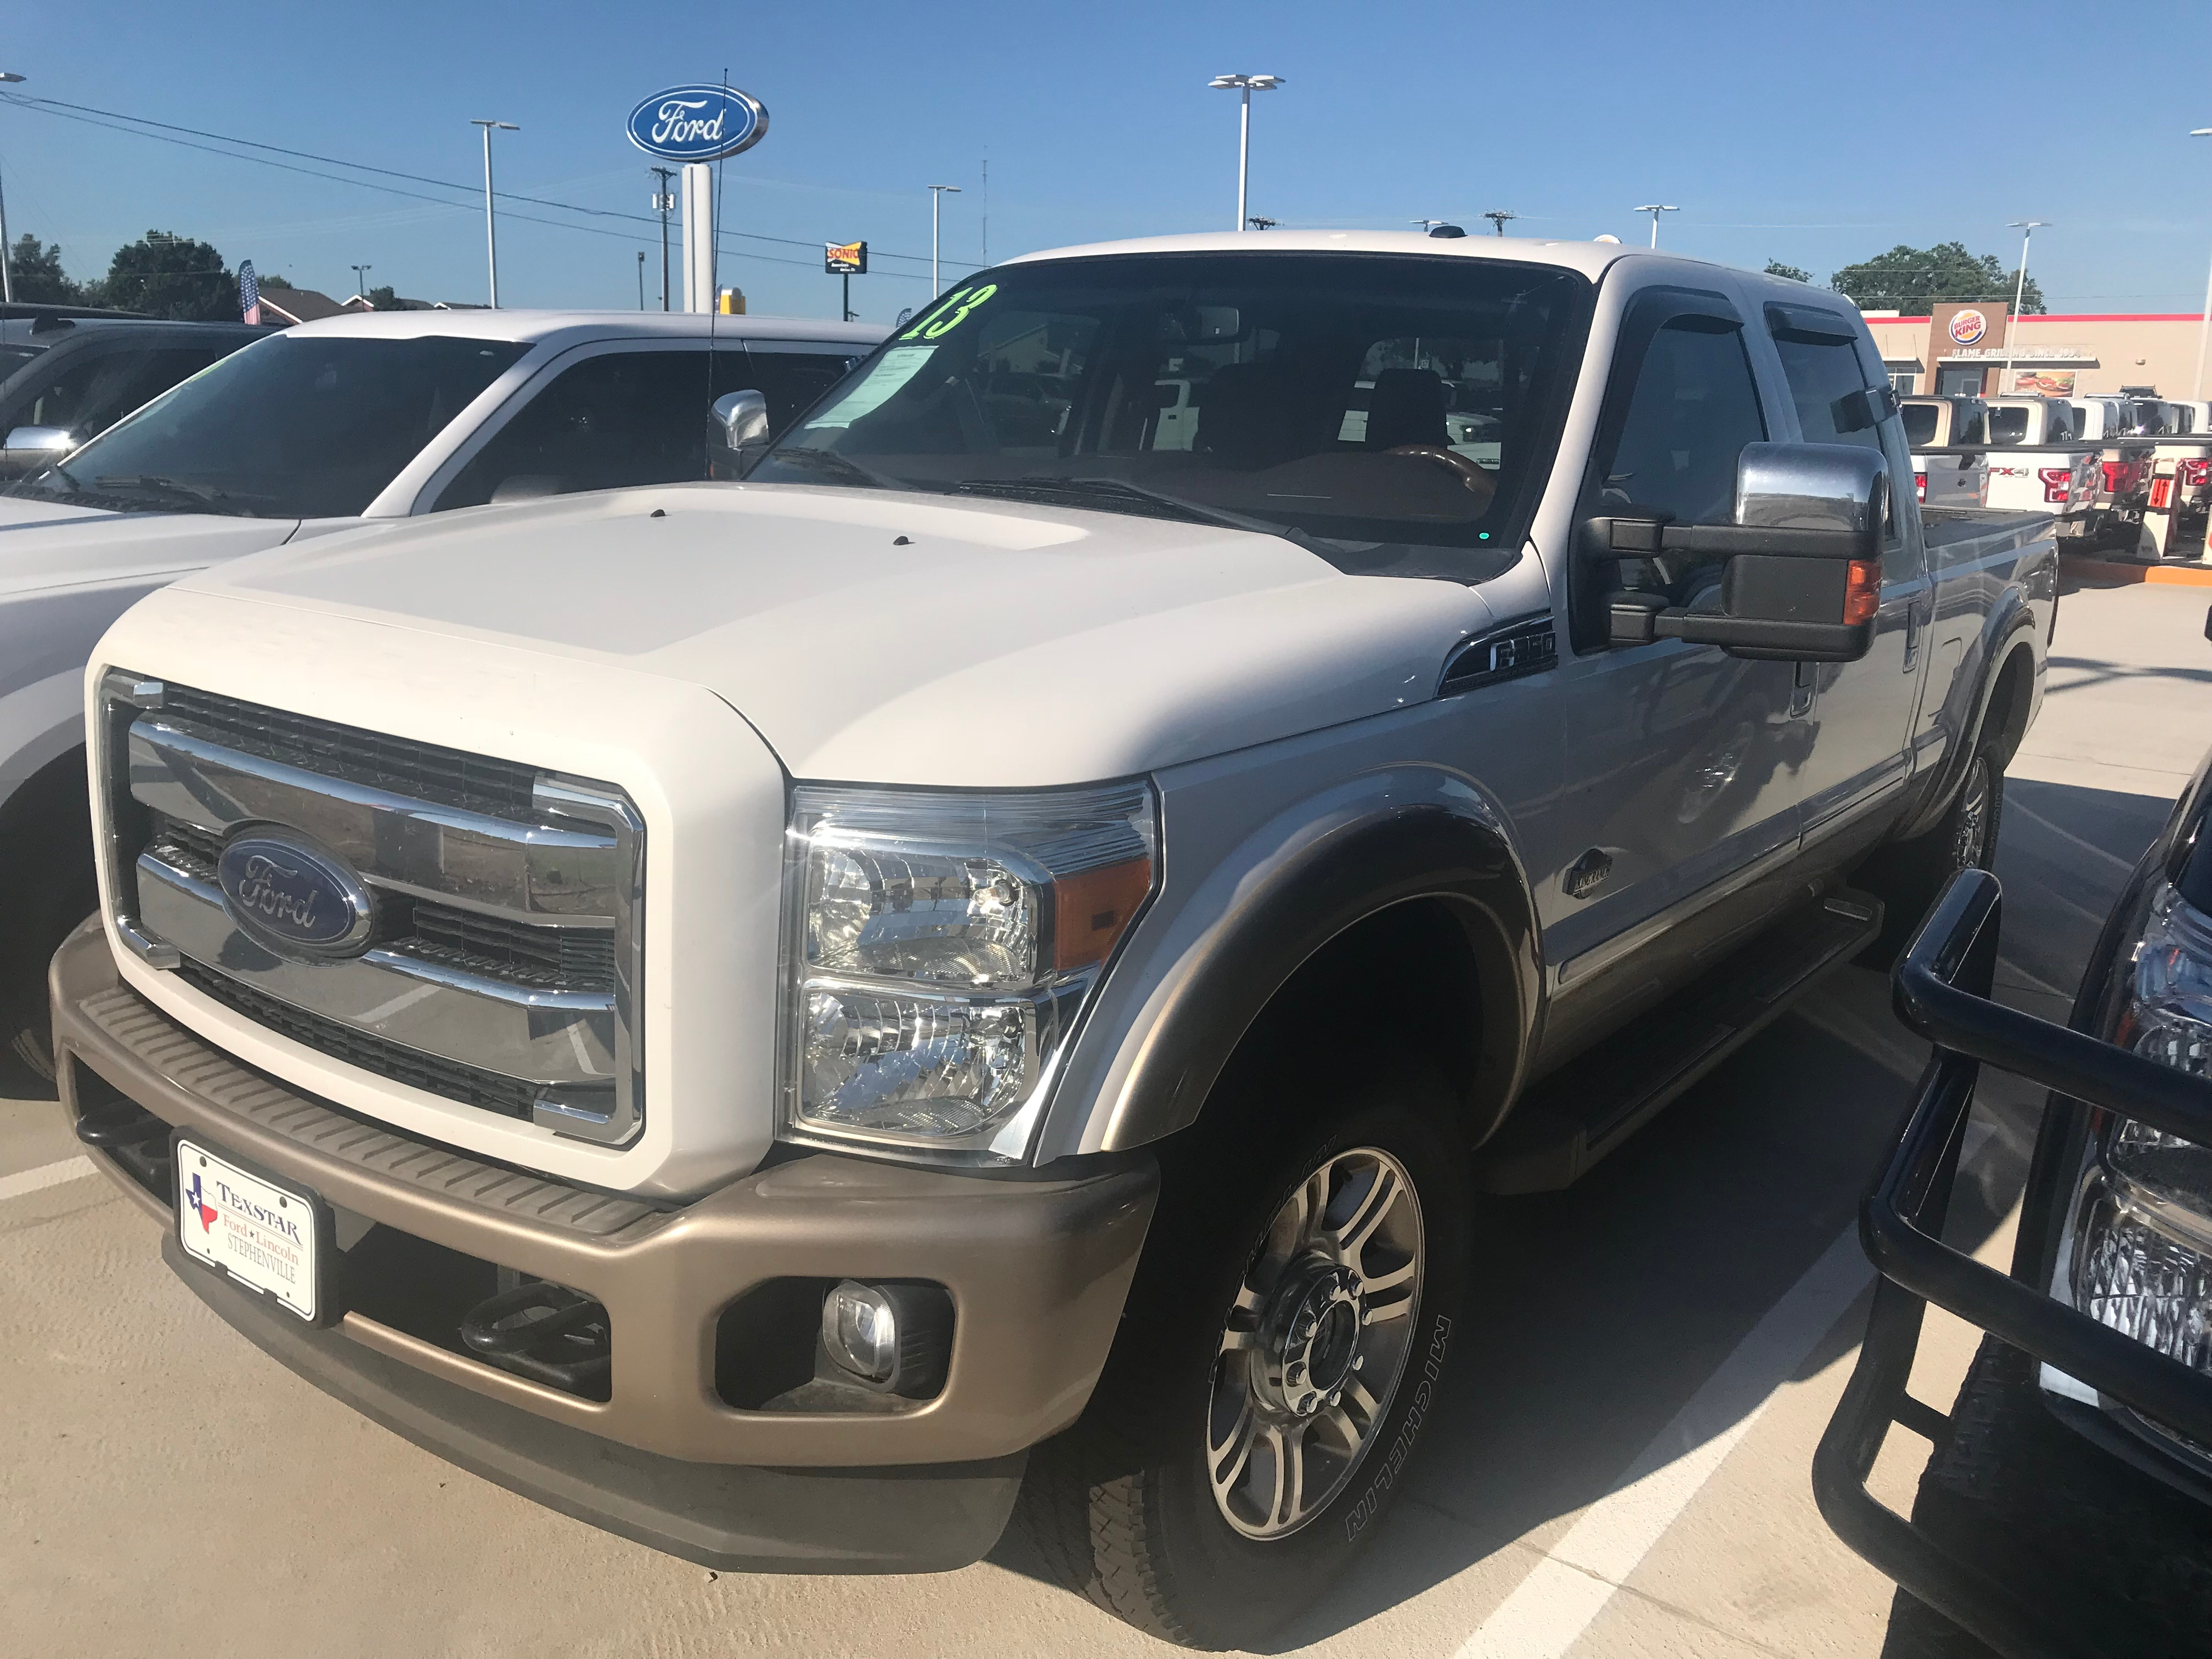 2013 Ford Super Duty F-25 King Ranch Crew Cab Truck